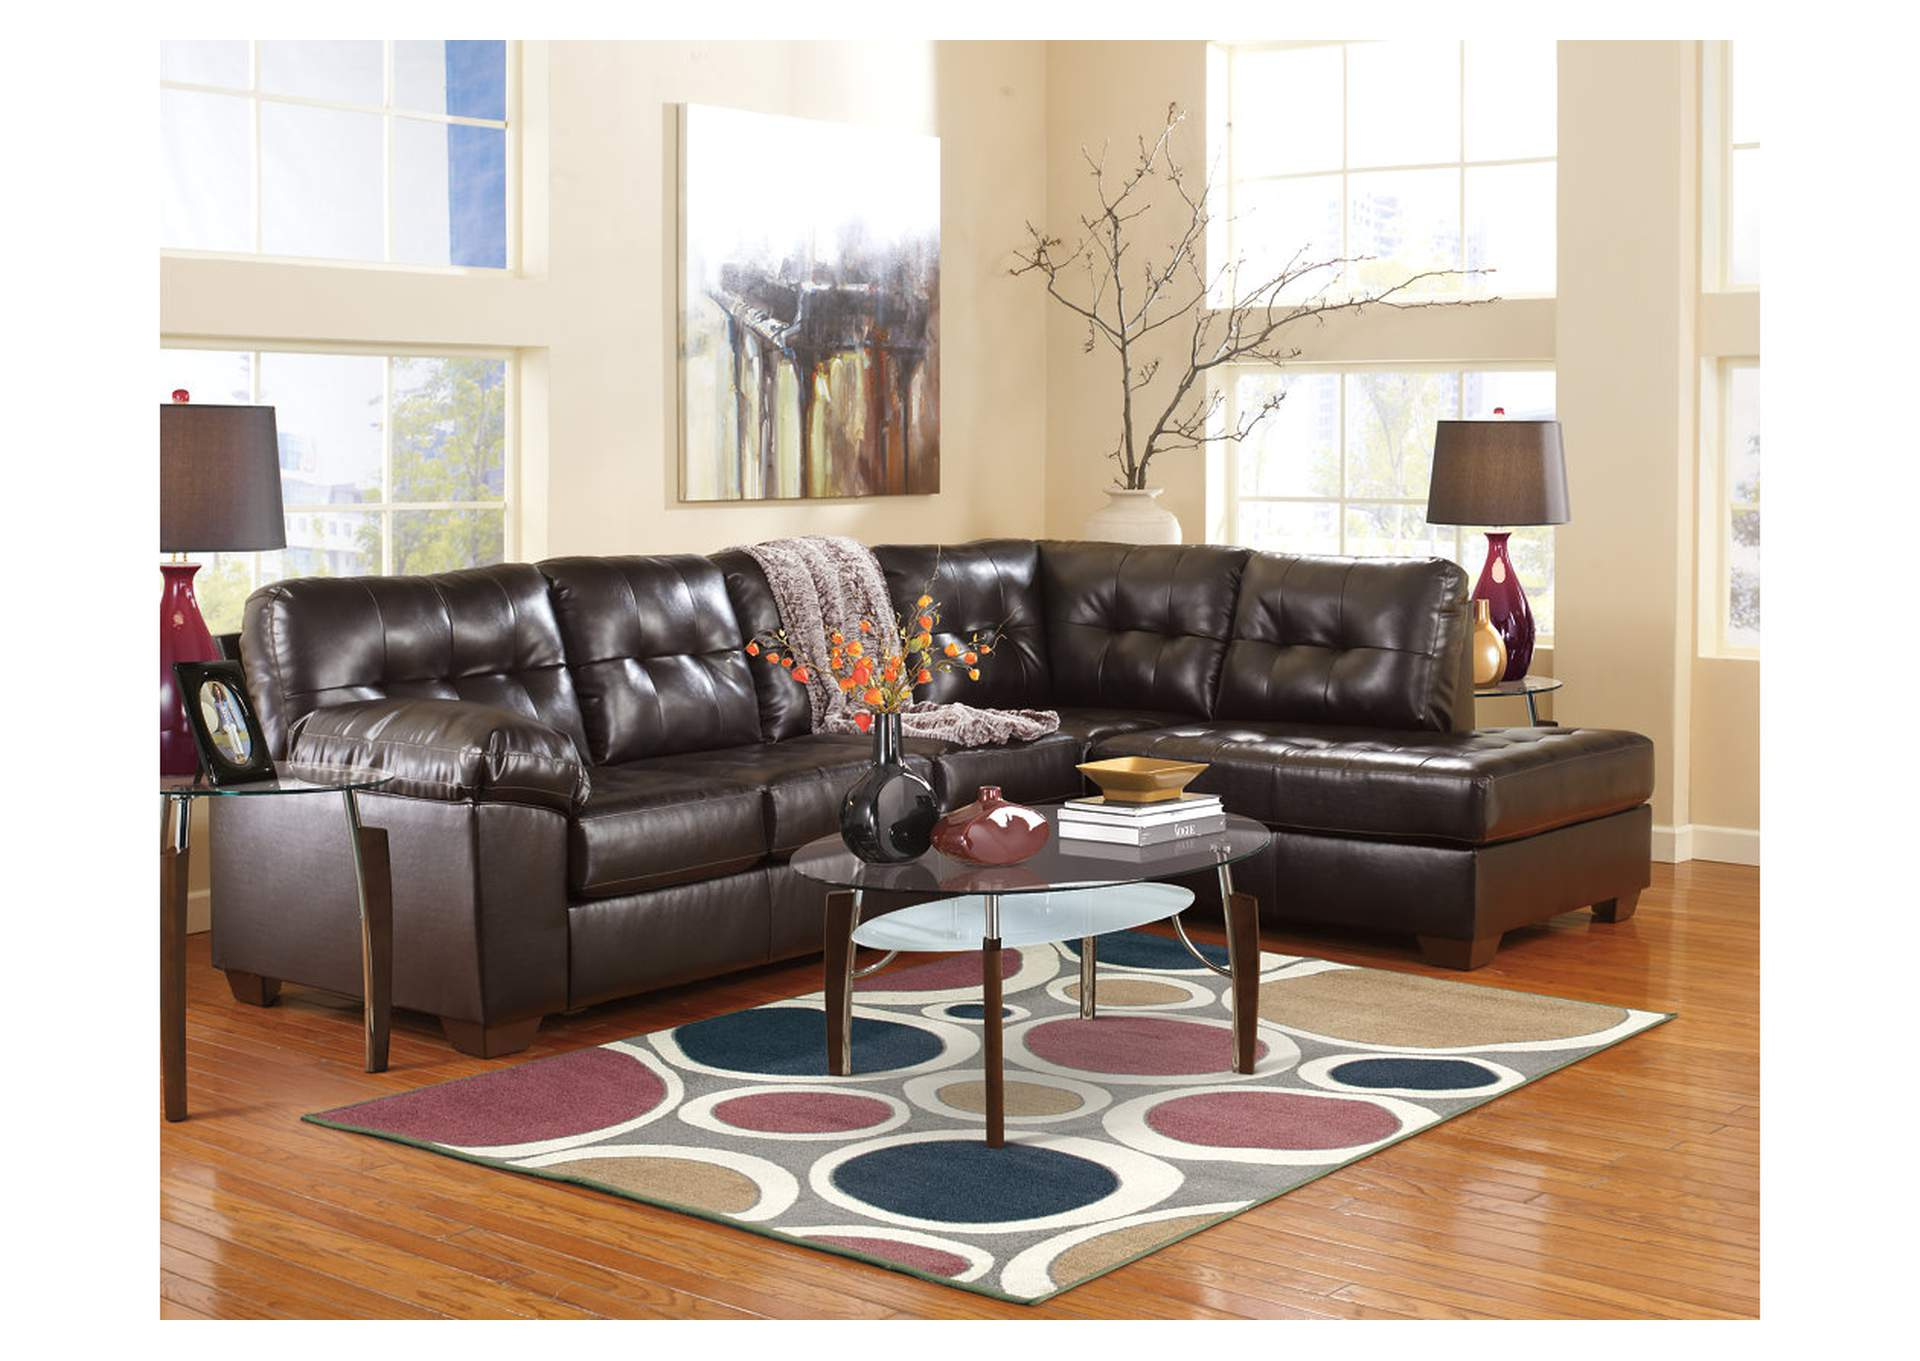 Alliston DuraBlend Chocolate Right Facing Chaise End Sectional,Signature Design By Ashley